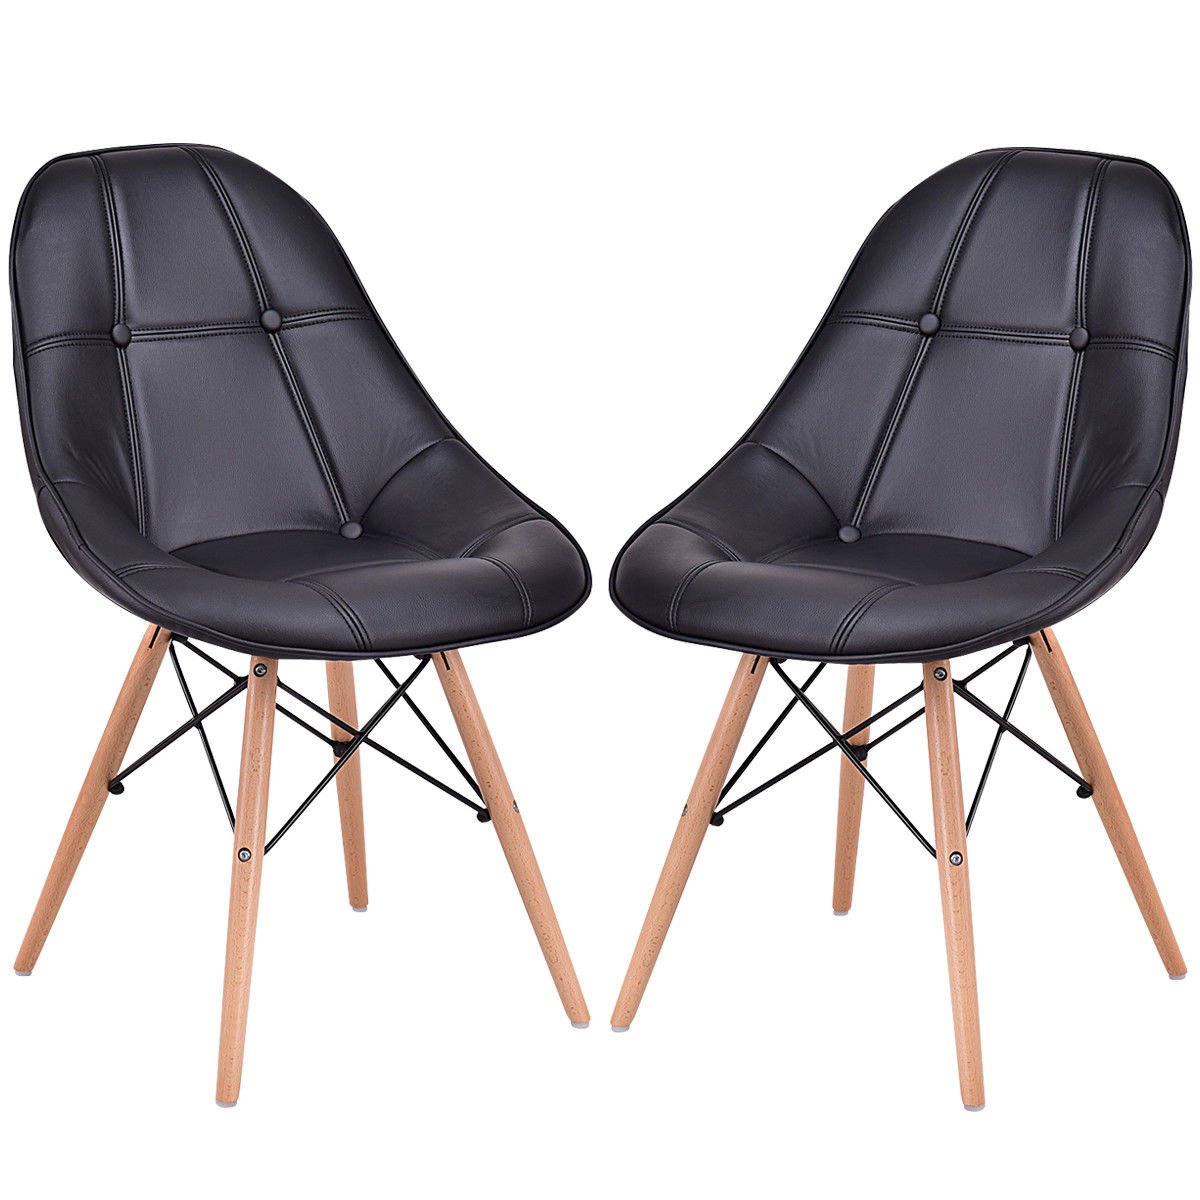 Giantex Set of 2 Dining Side Chair Modern Armless PU Leather Seat with Wood Legs Black Leisure Dining Chairs HW56505BK helix dining chair anti black gold set of 2